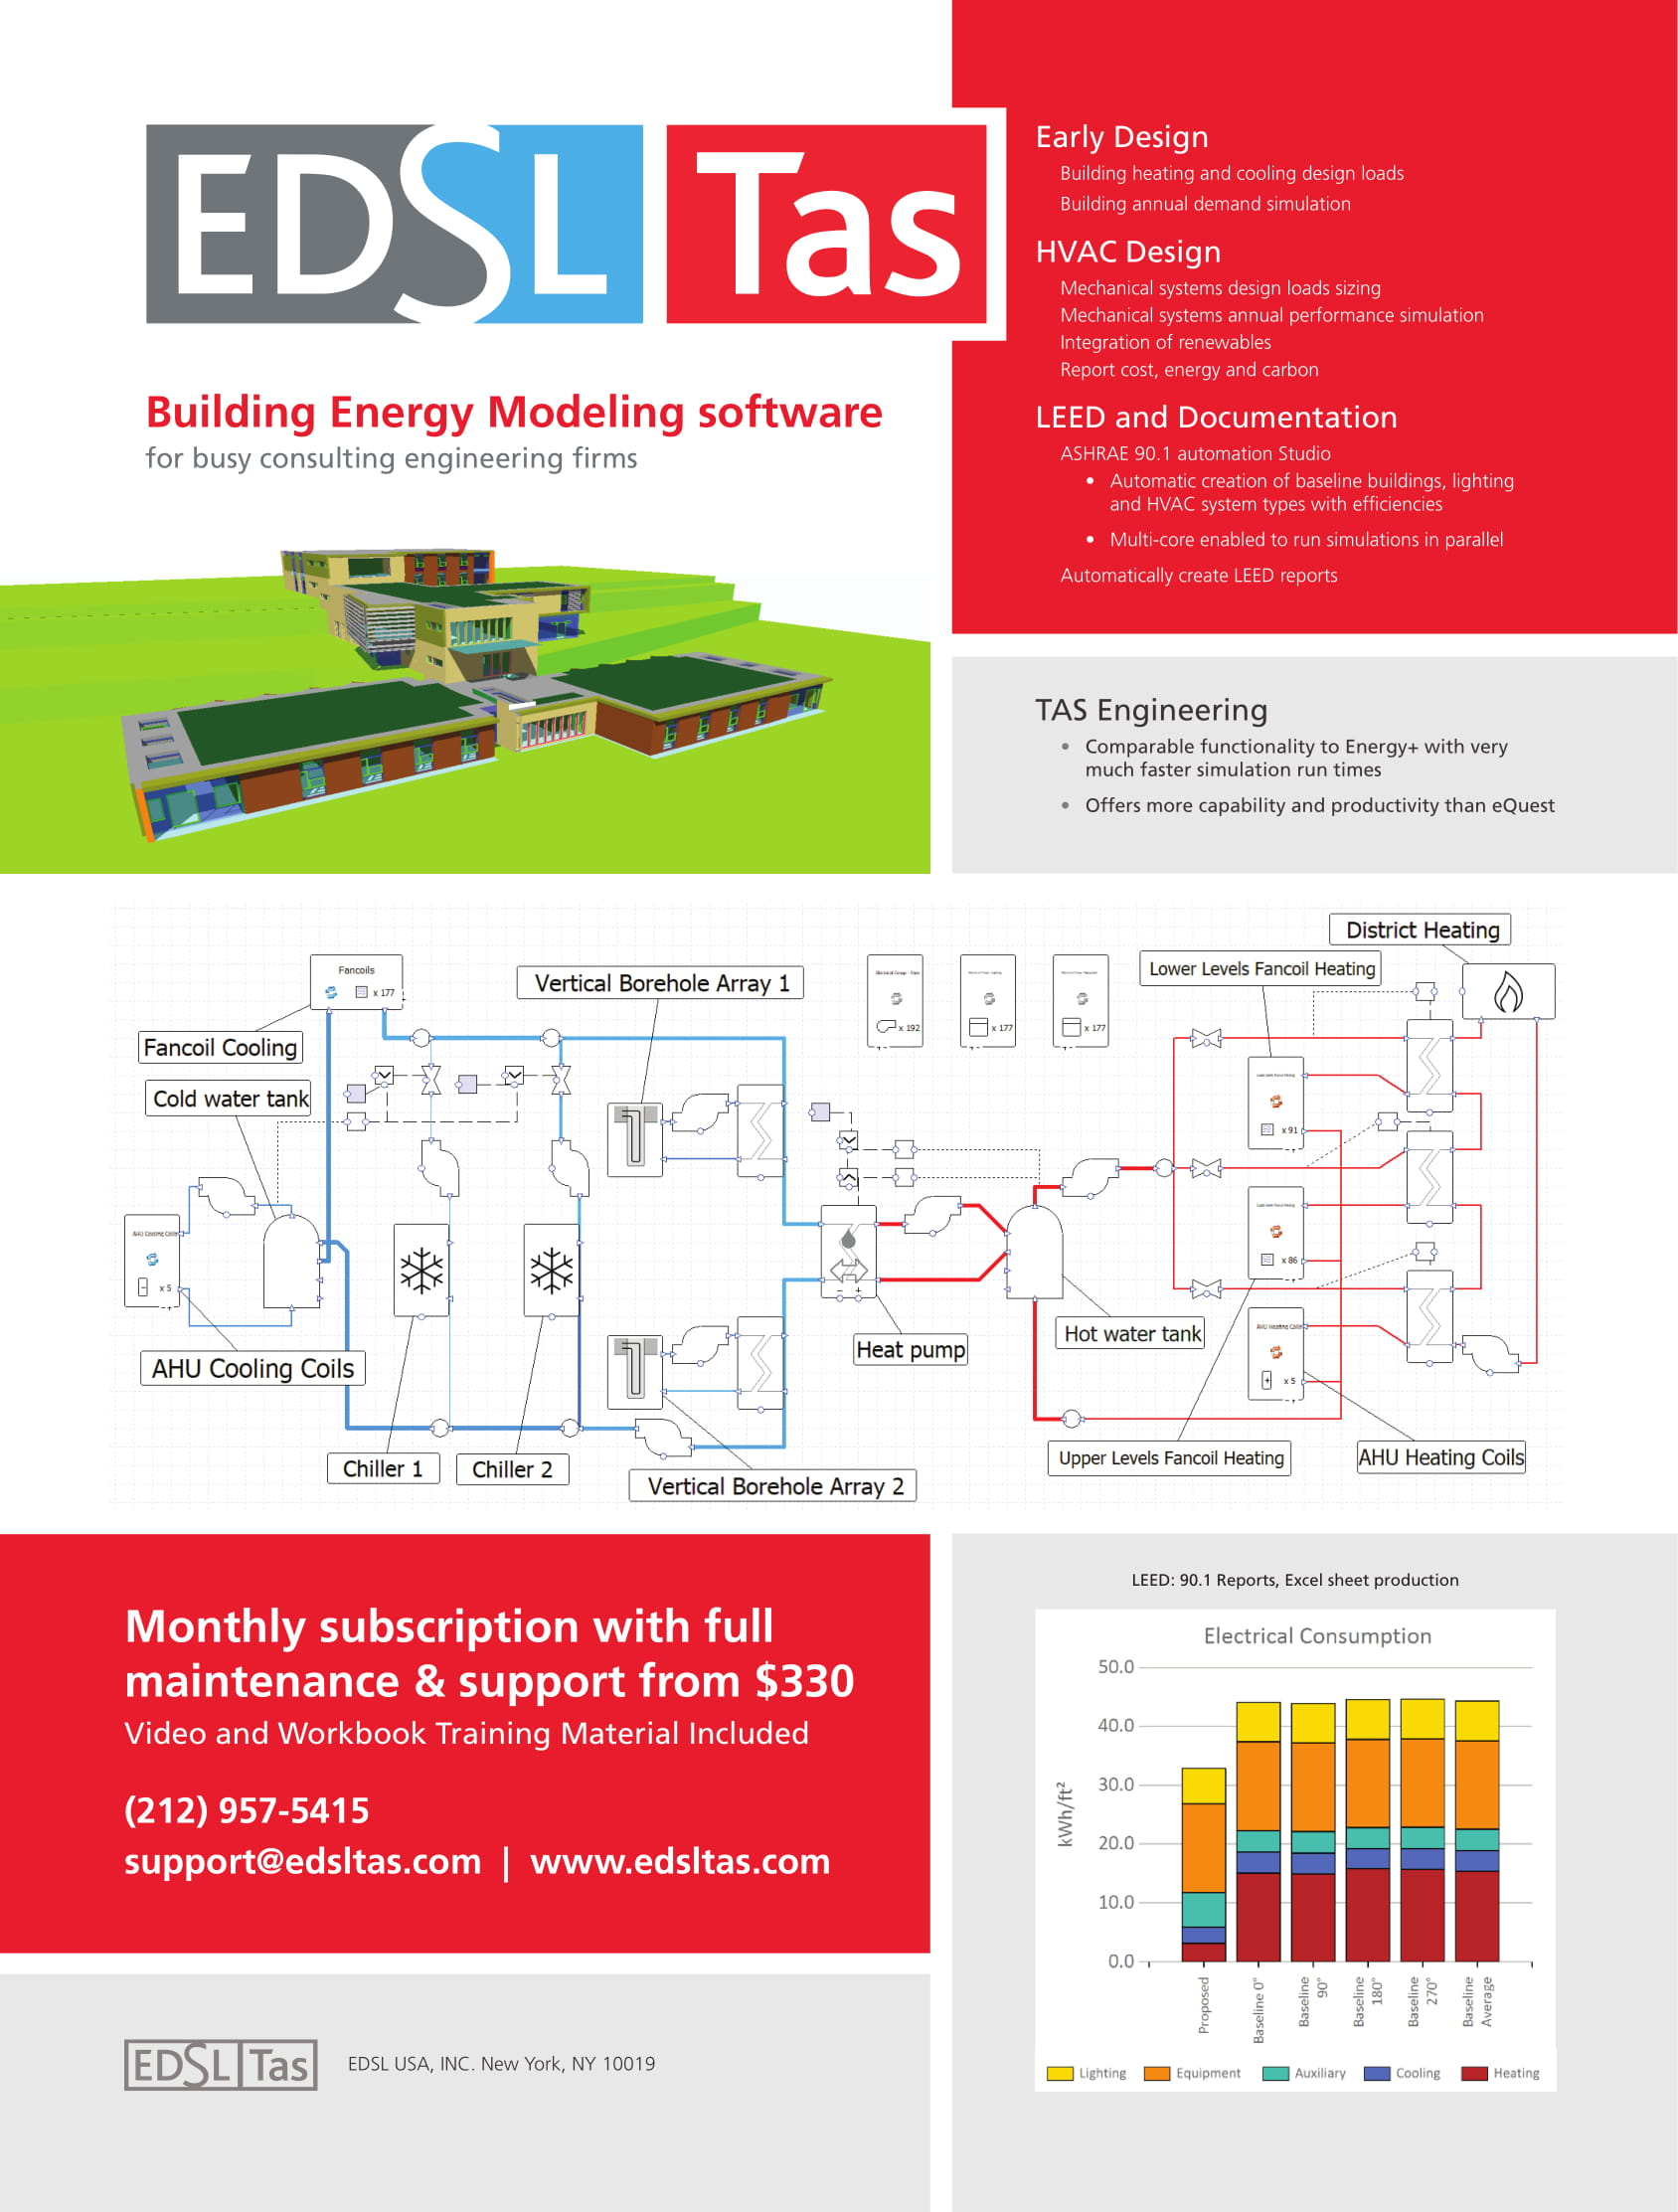 EDSL Tas_ASHRAE Journal ad_September-1